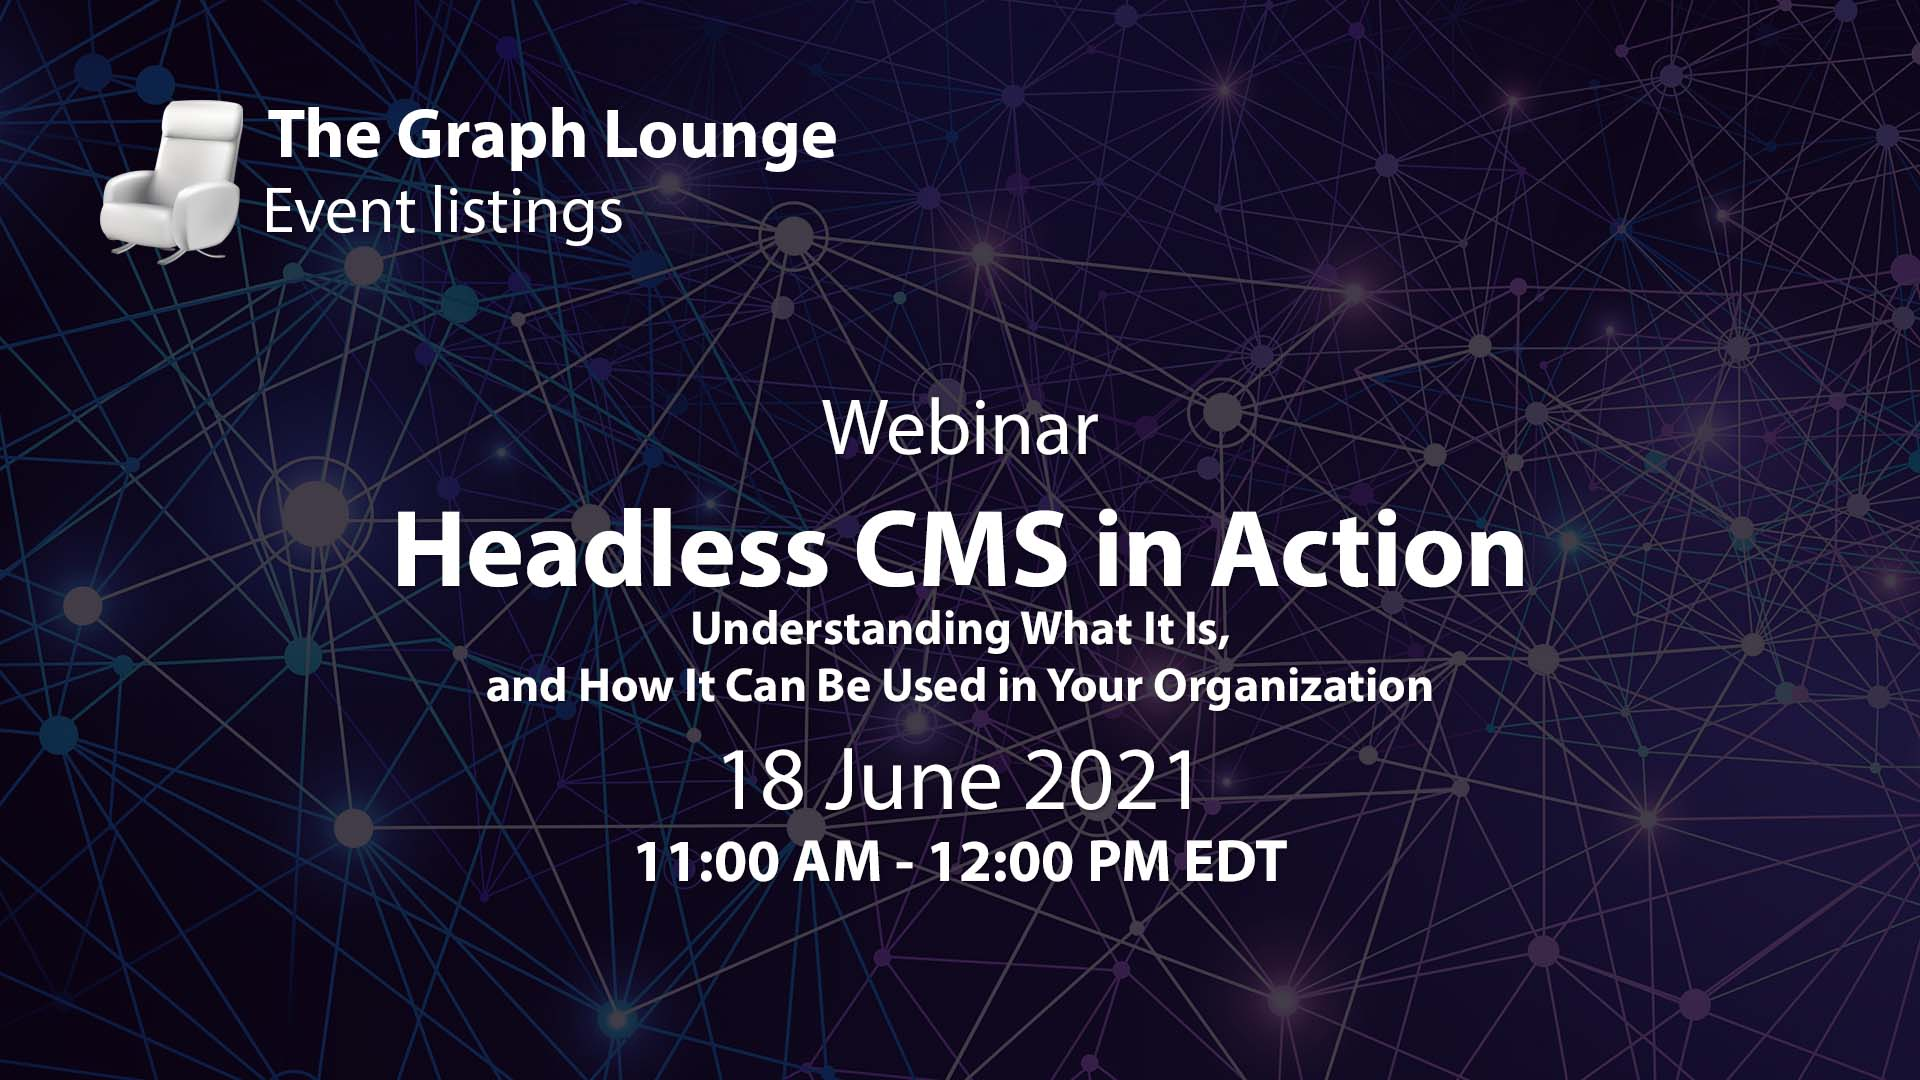 Headless CMS in Action: Understanding What It Is, and How It Can Be Used in Your Organization